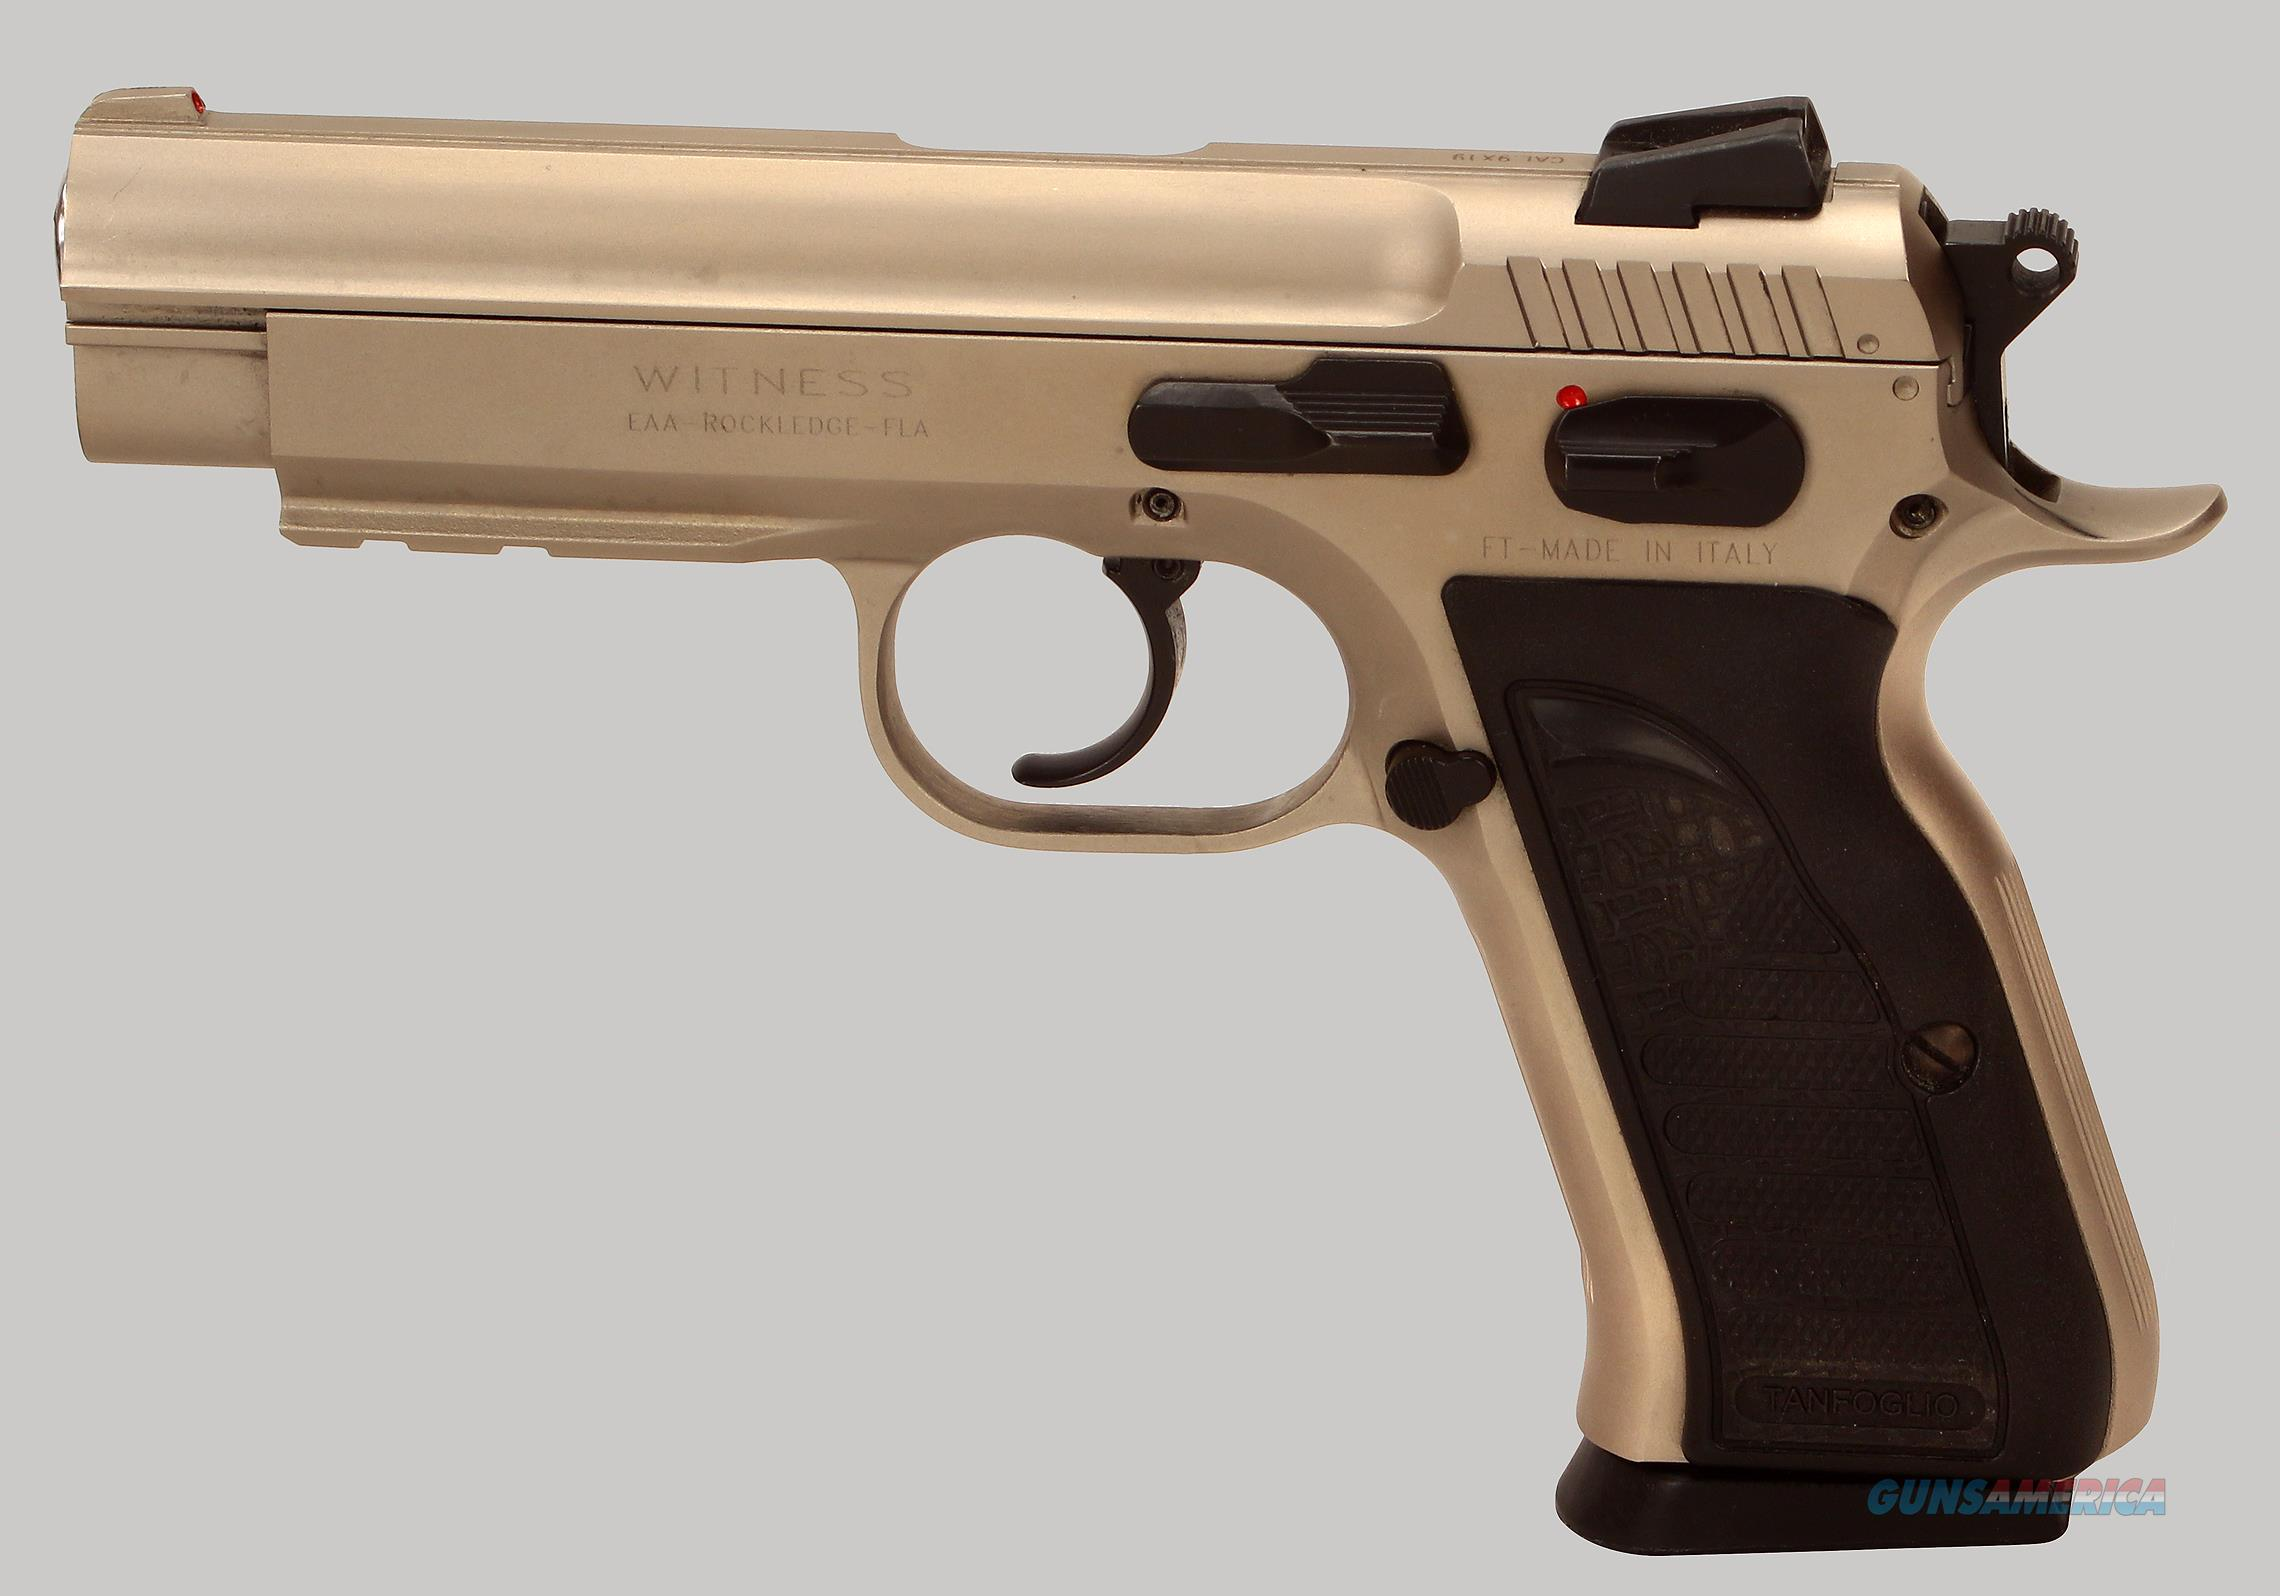 Tanfoglio (EAA) 9mm Witness Pistol  Guns > Pistols > EAA Pistols > Other